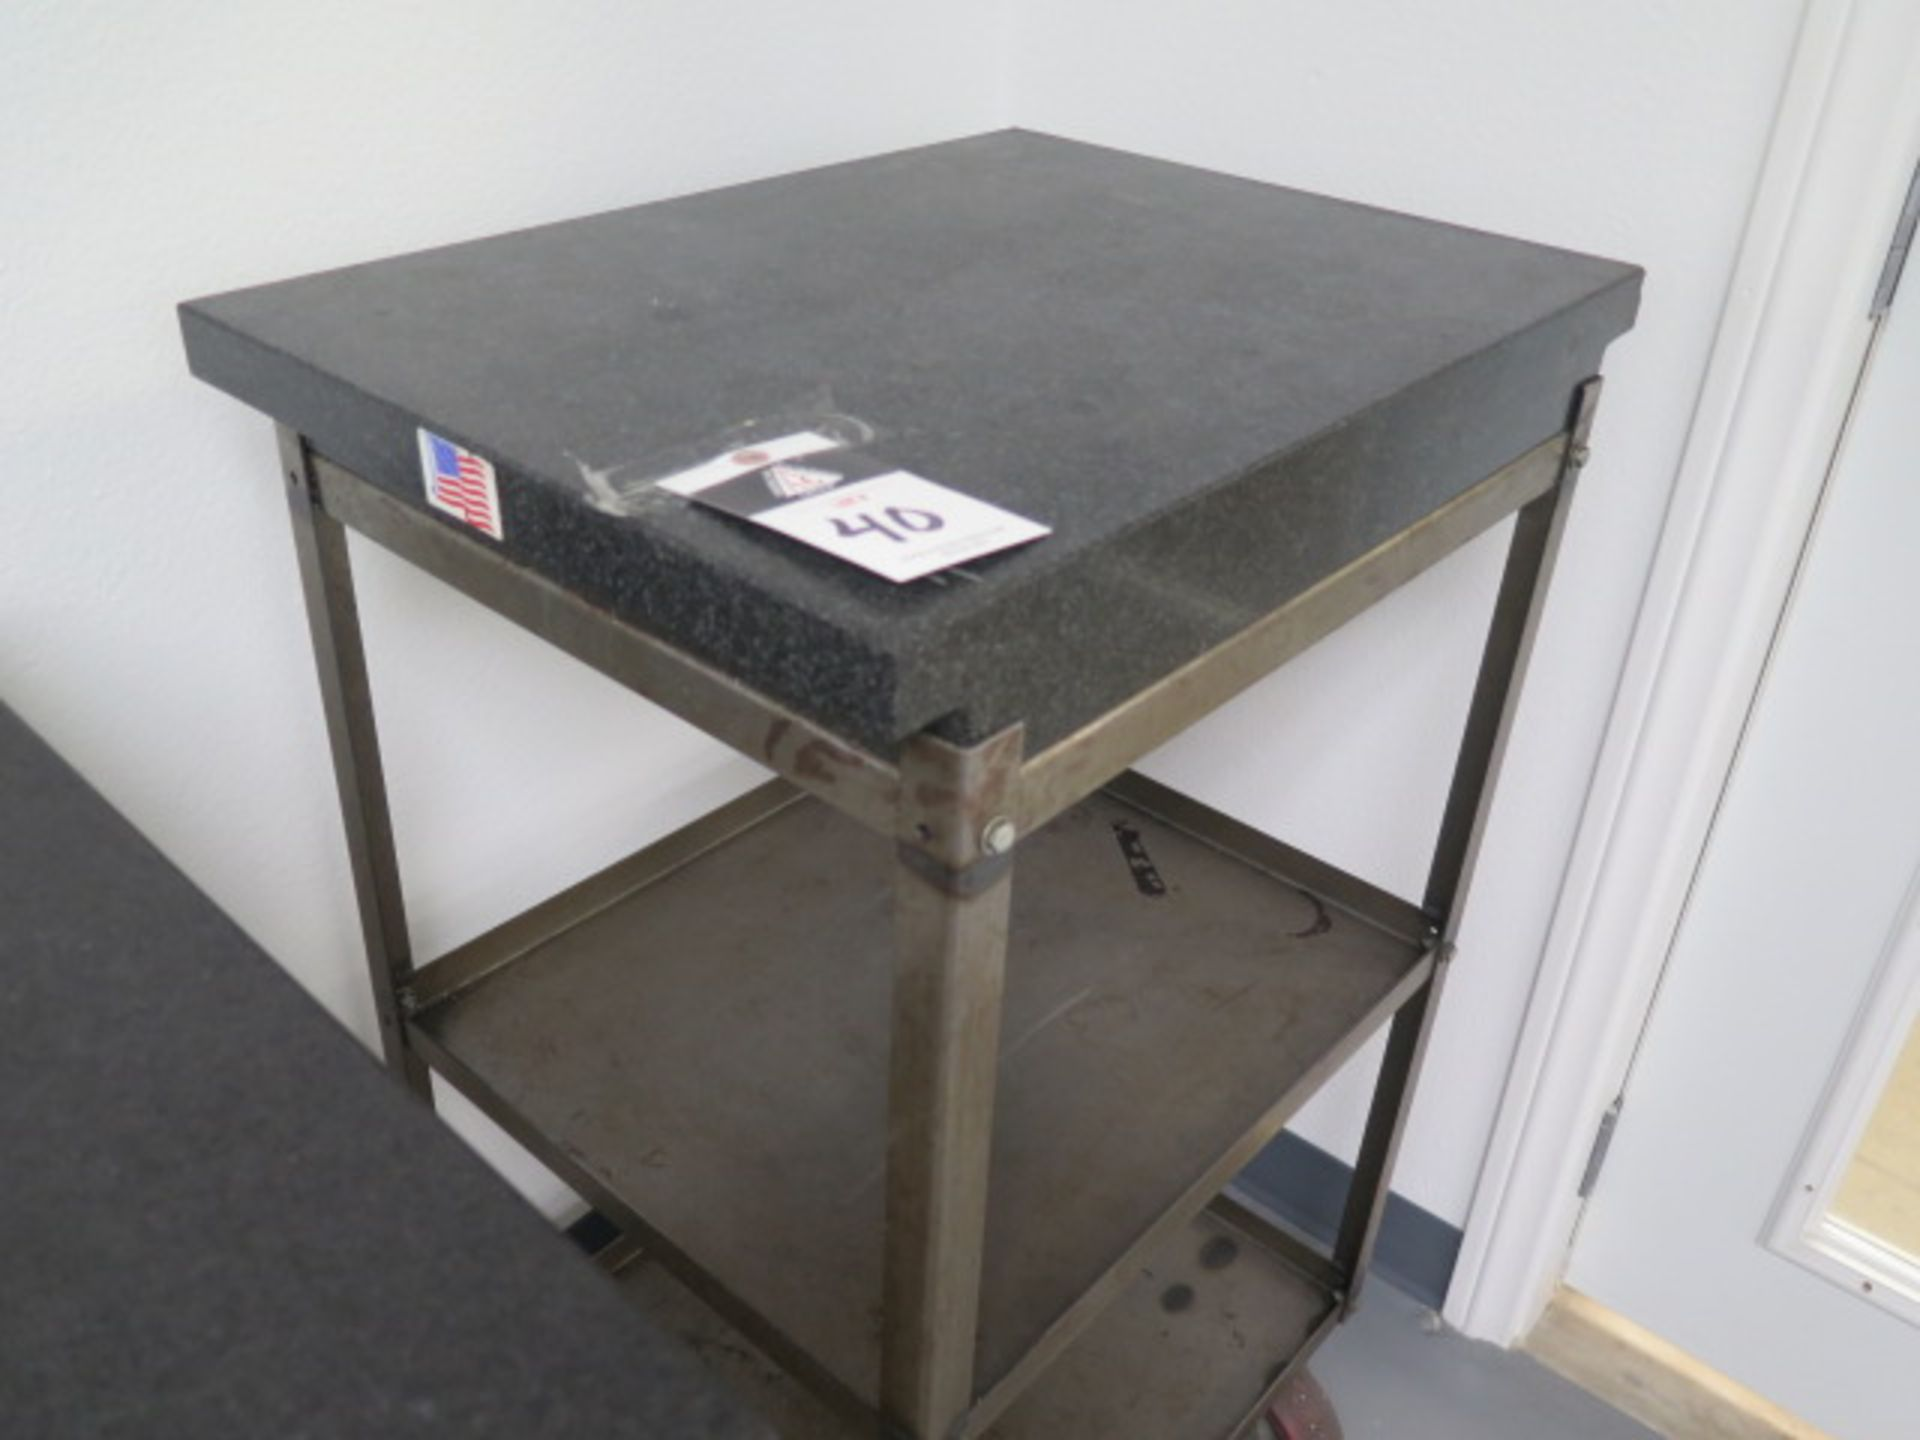 """18"""" x 24"""" x 4"""" 2-Ledge Granite Surface Plate w/ Roll Stand (SOLD AS-IS - NO WARRANTY) - Image 2 of 4"""